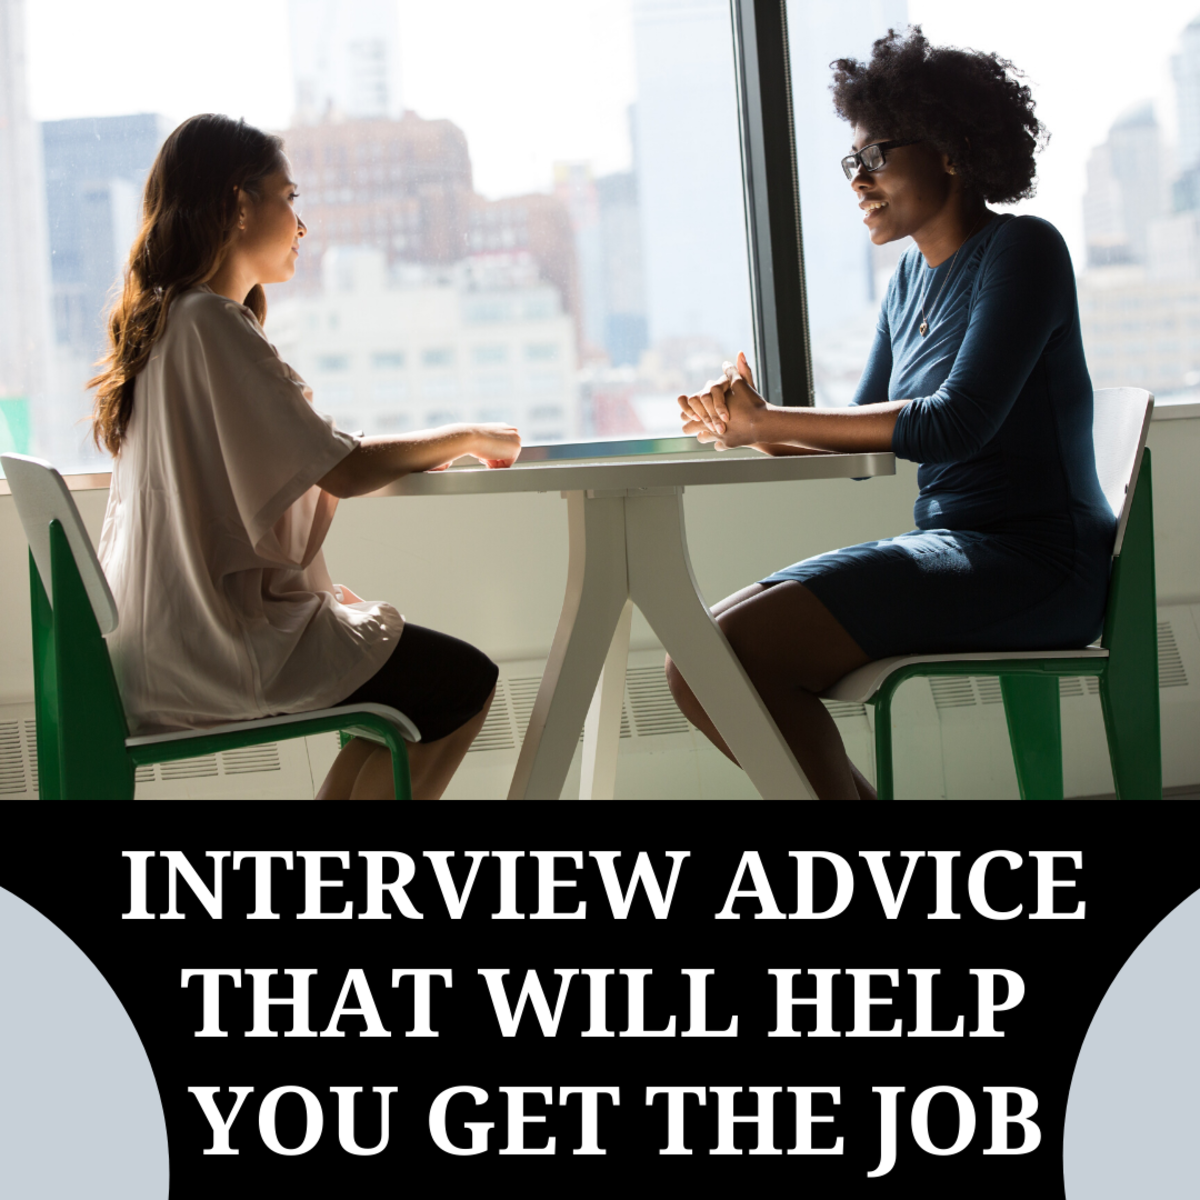 This interview advice will help you get the job.